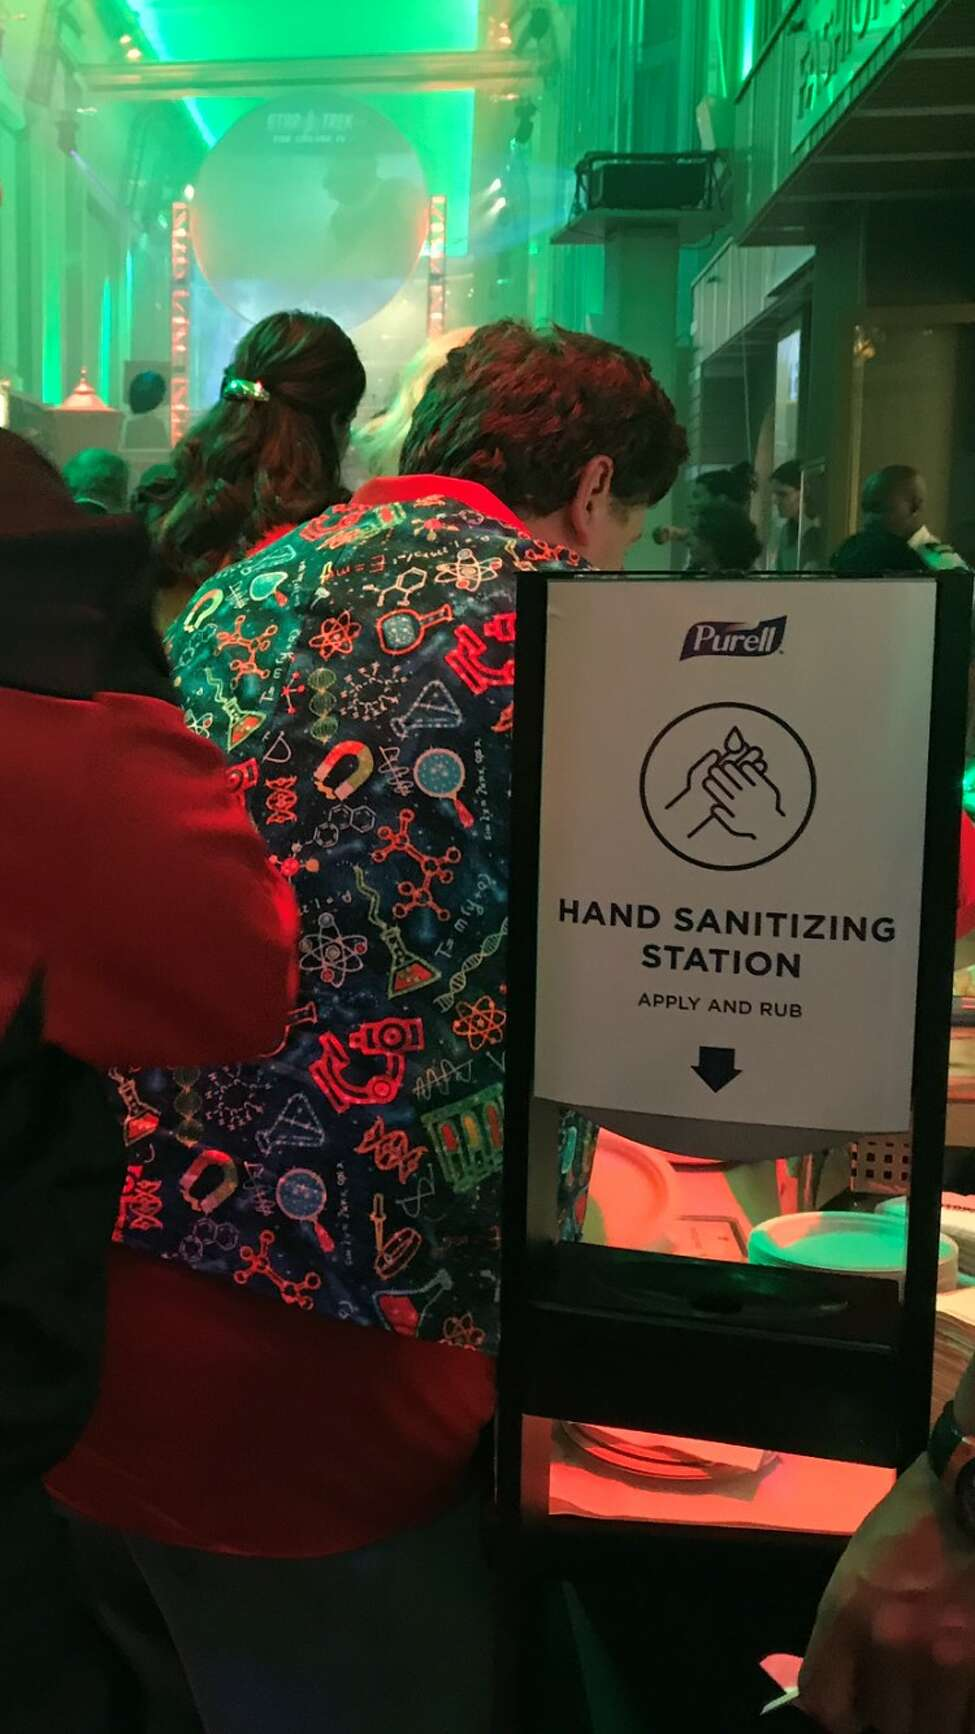 One of many, many hand-sanitizer stations on the